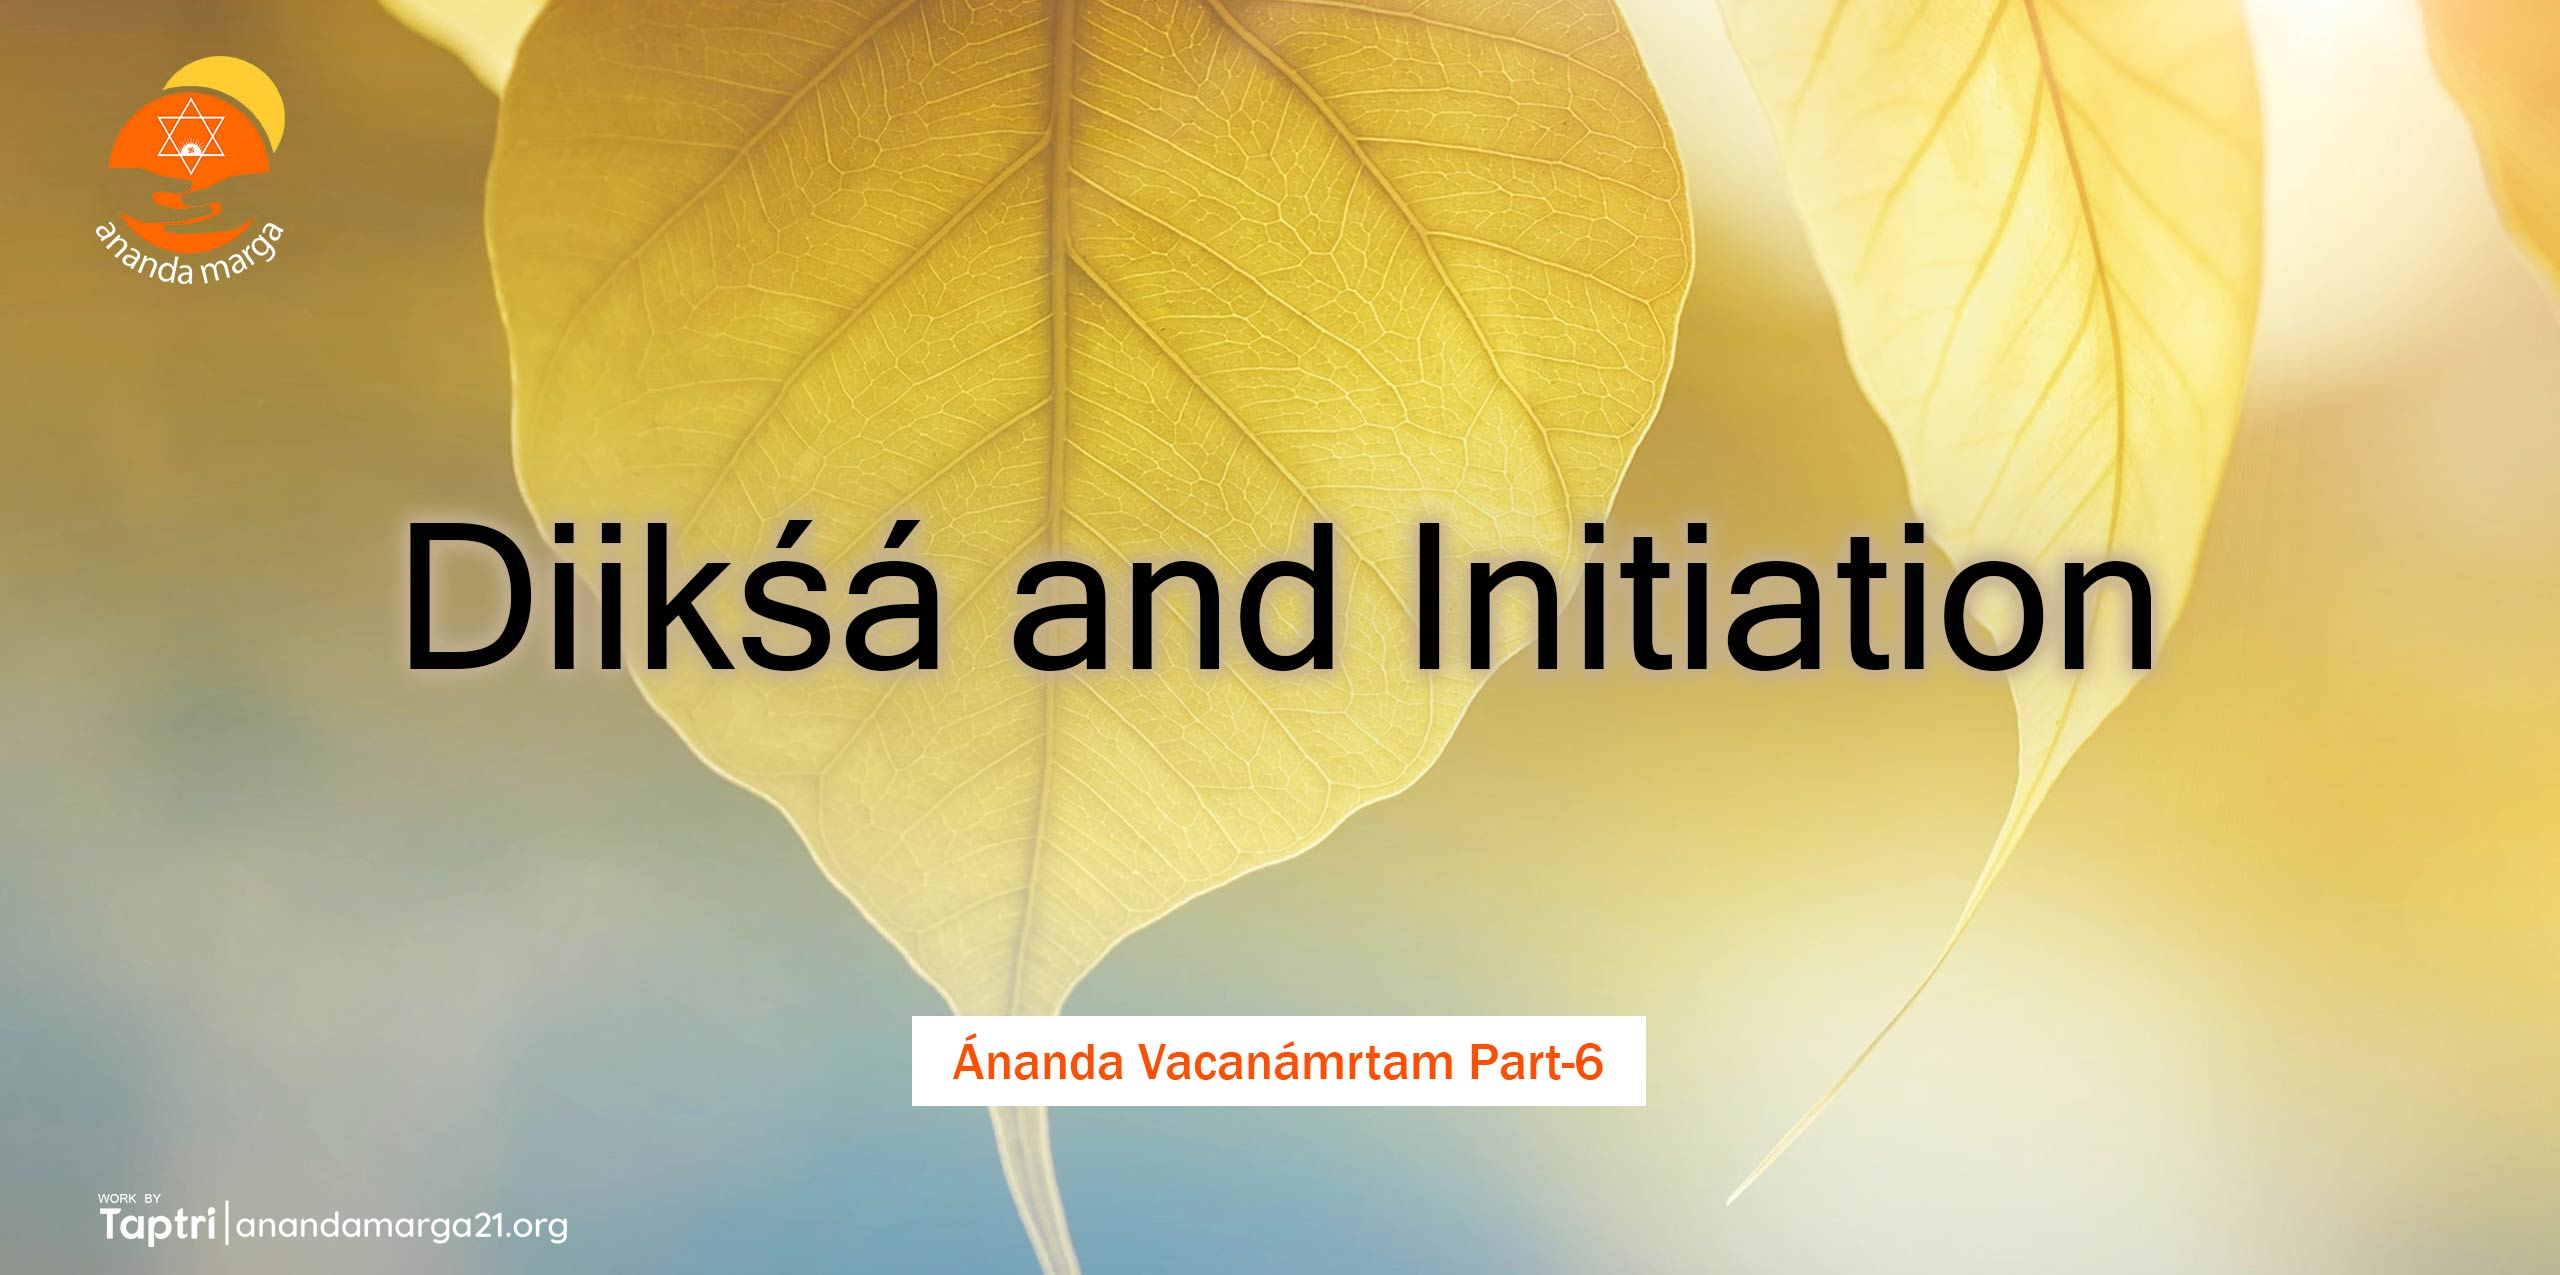 Diiksa-and-Initiation-Ananda-Vacanamrtm-06-anandamarga